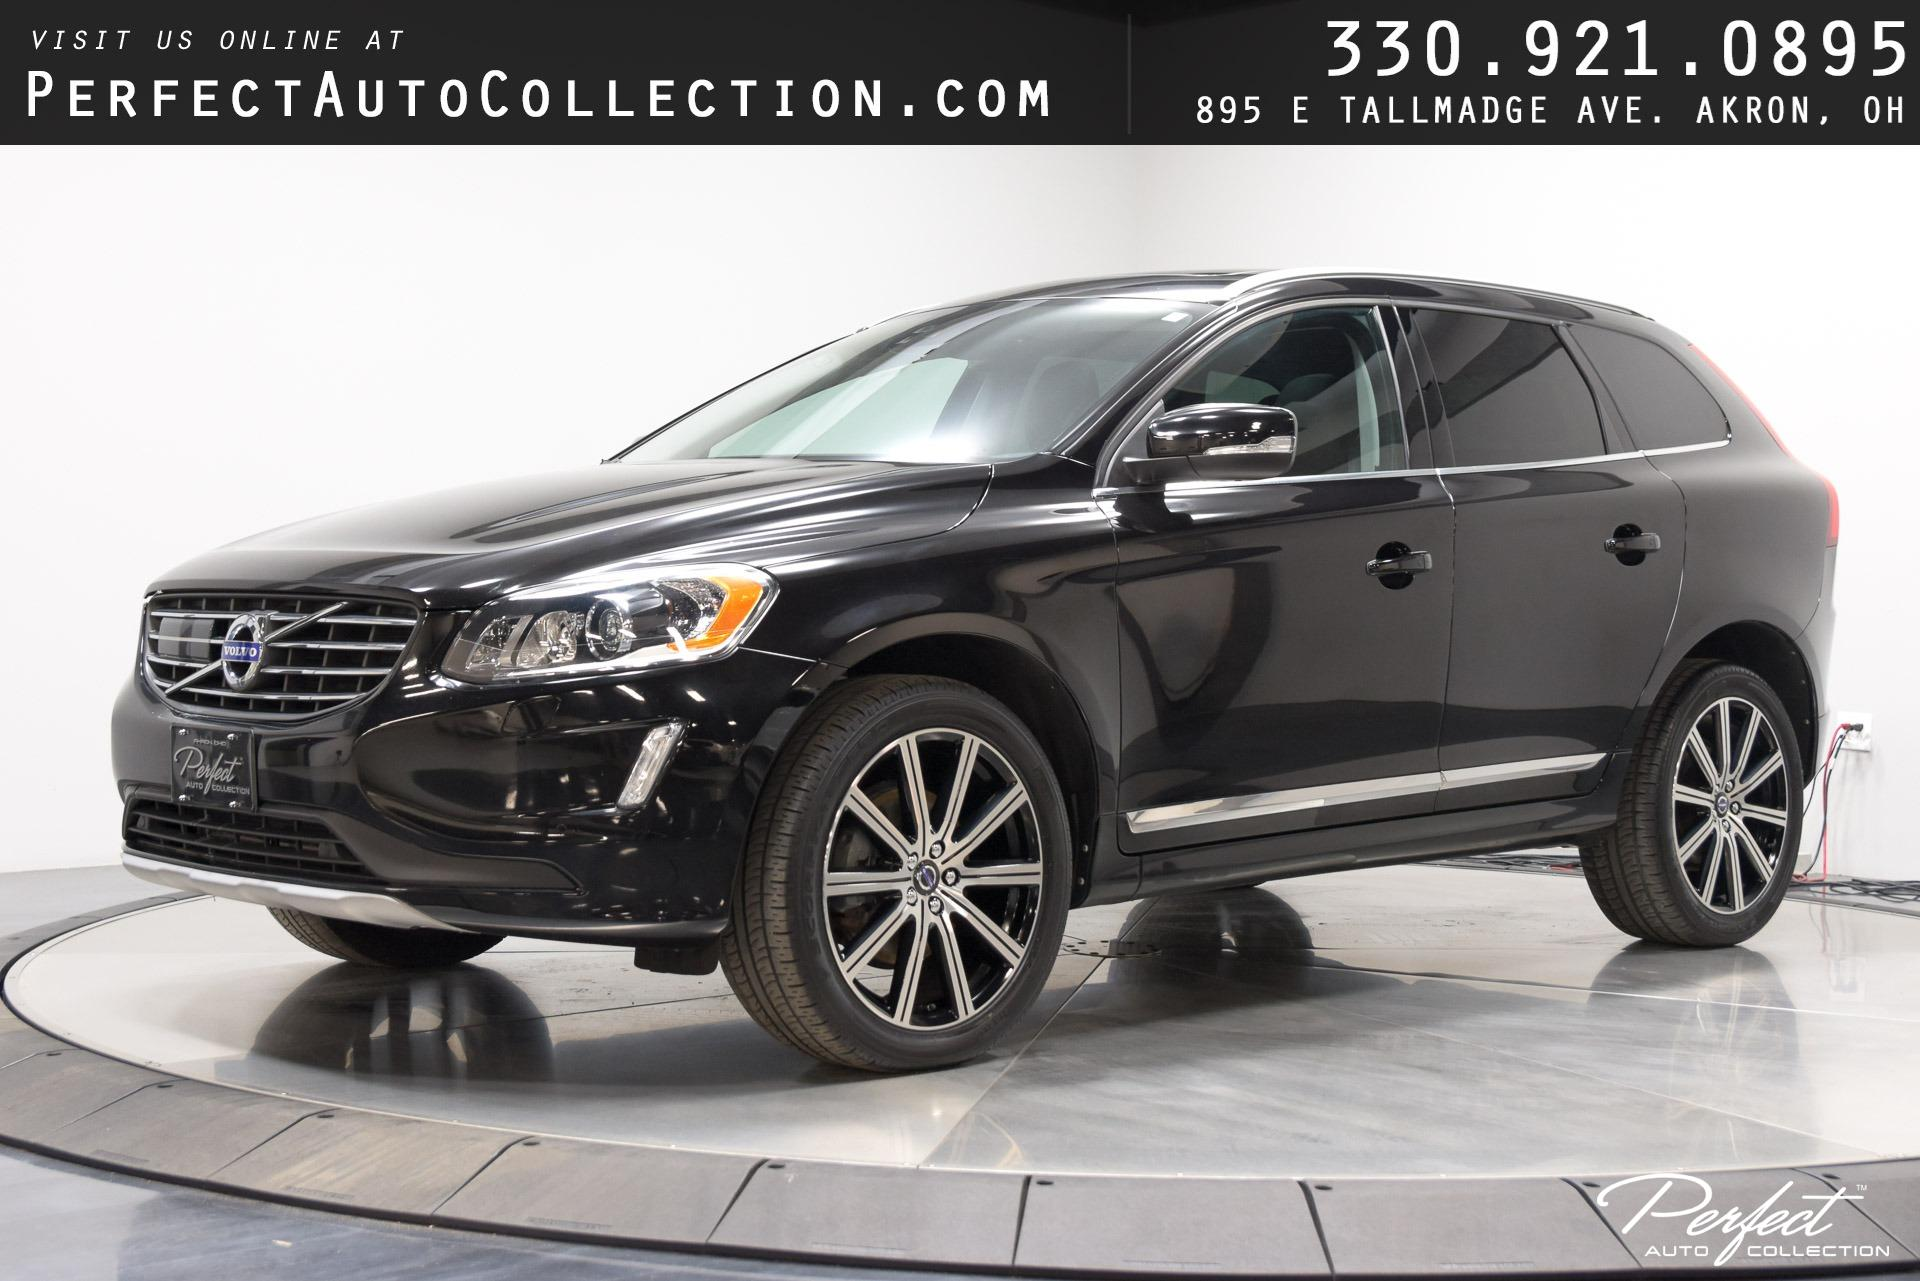 Used 2017 Volvo XC60 T6 Inscription for sale $25,495 at Perfect Auto Collection in Akron OH 44310 1